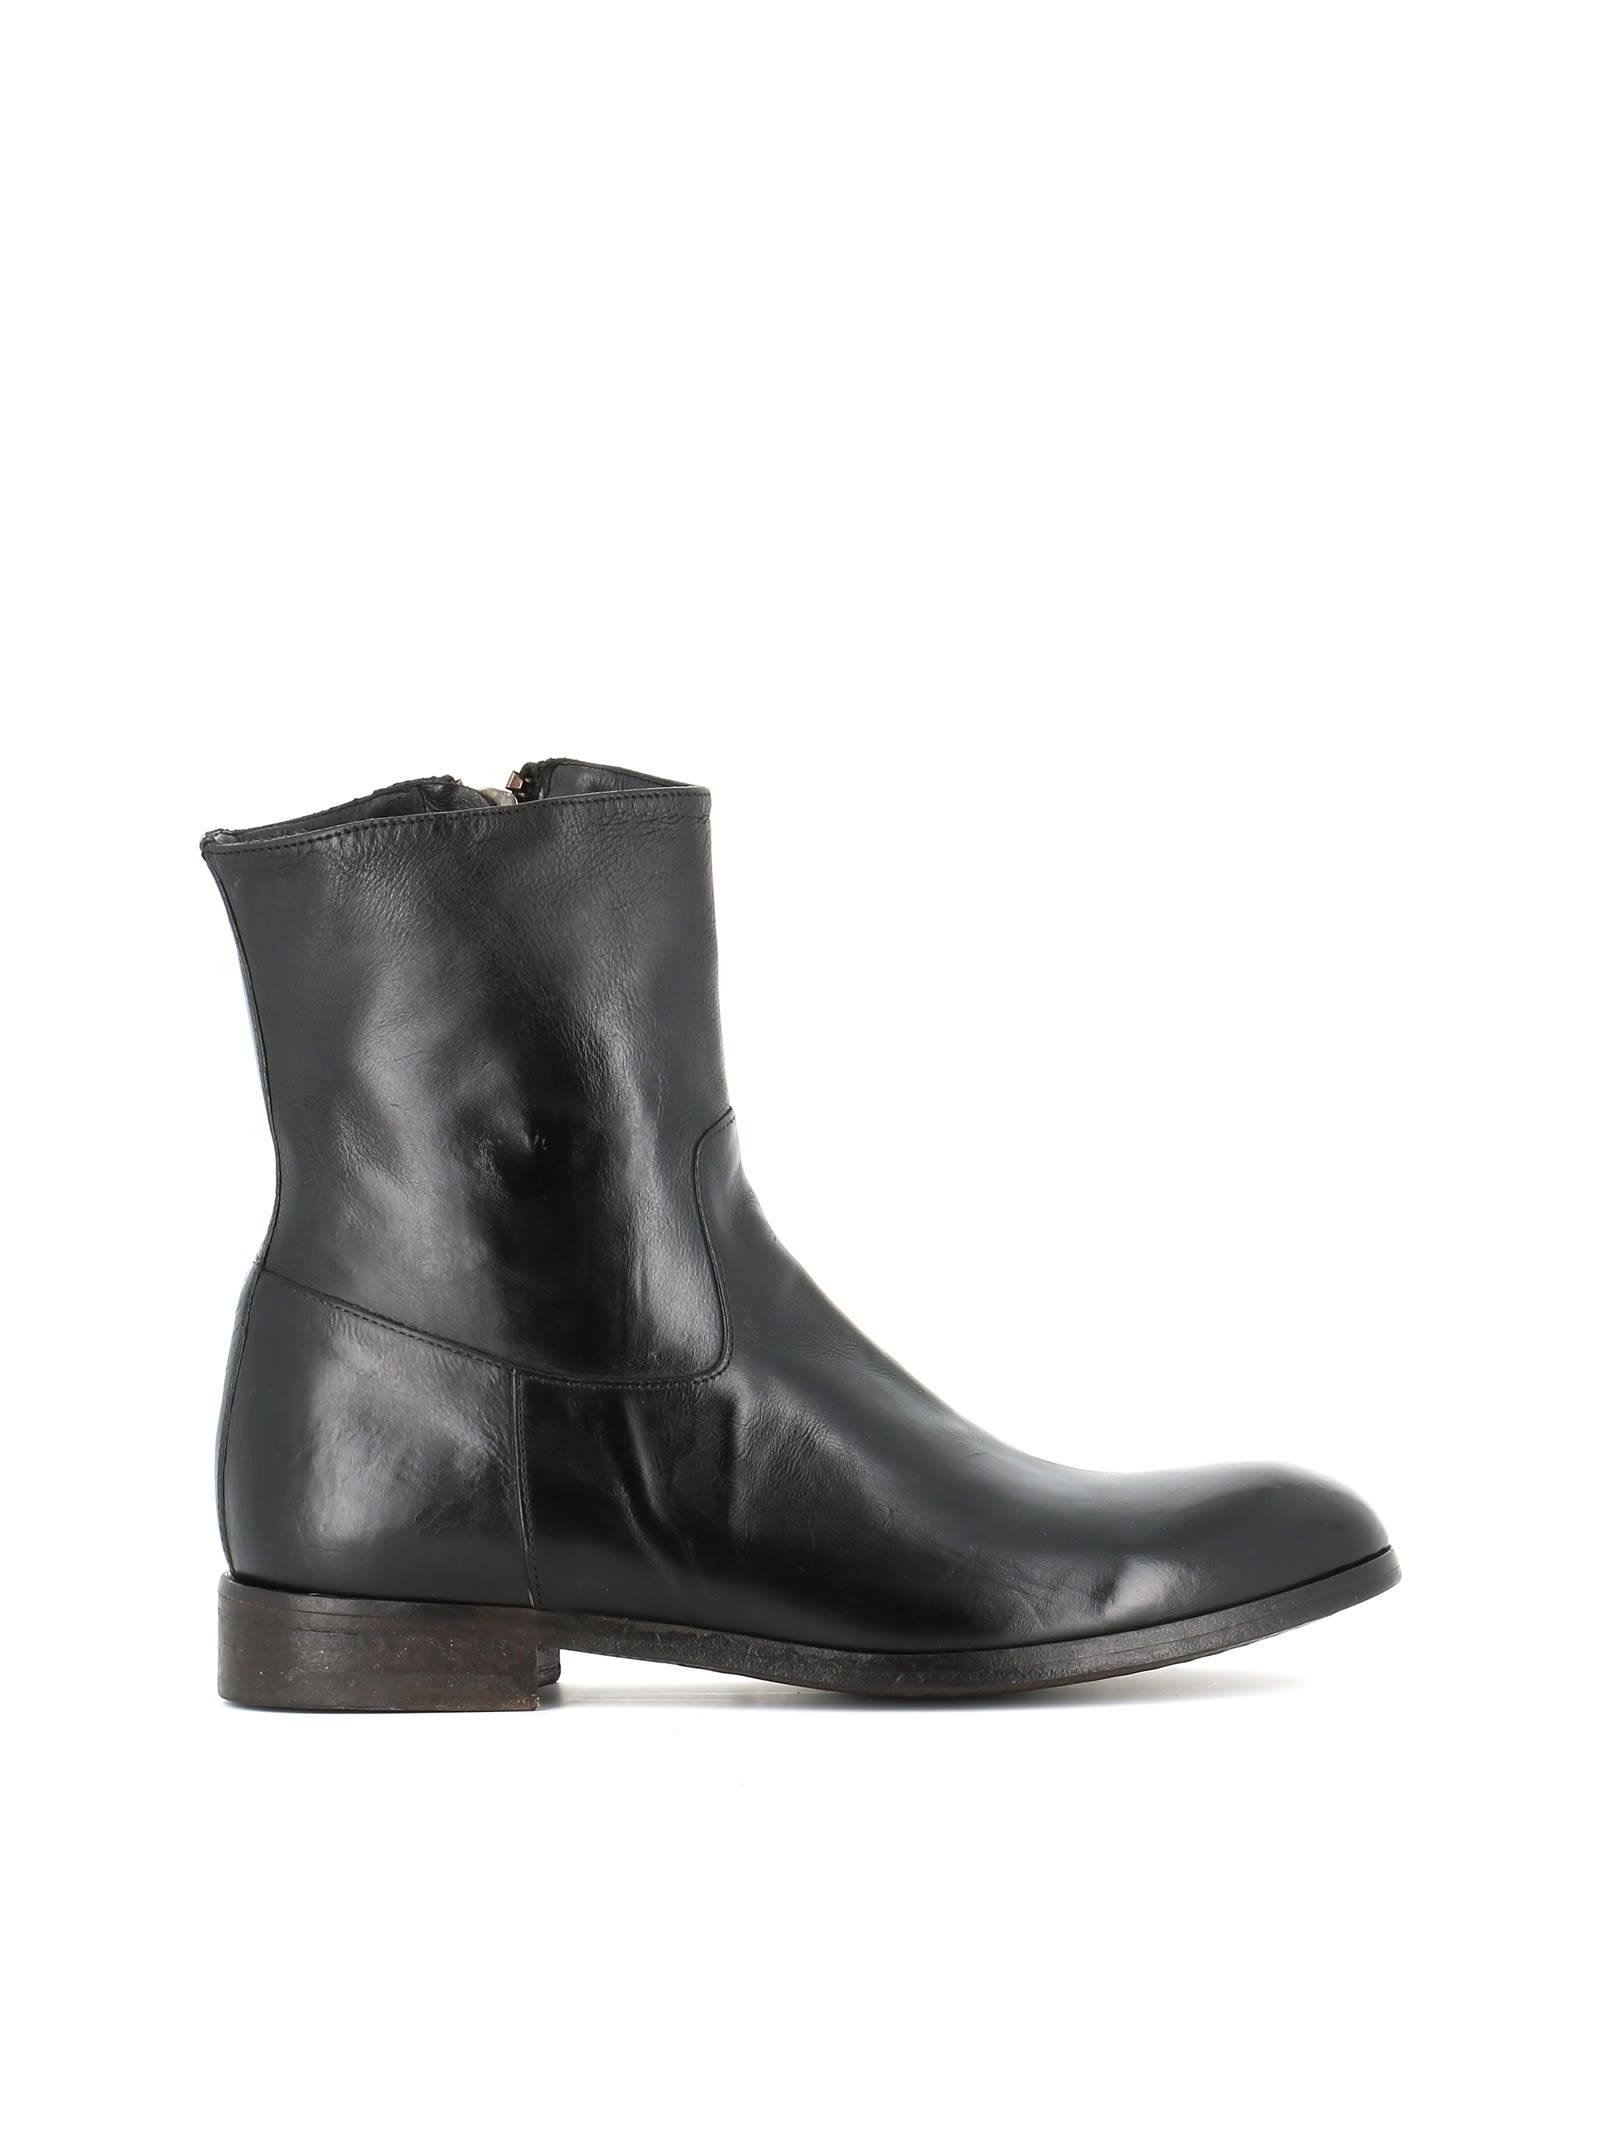 "STURLINI Ankle Boots ""Ar-8903"" in Black"